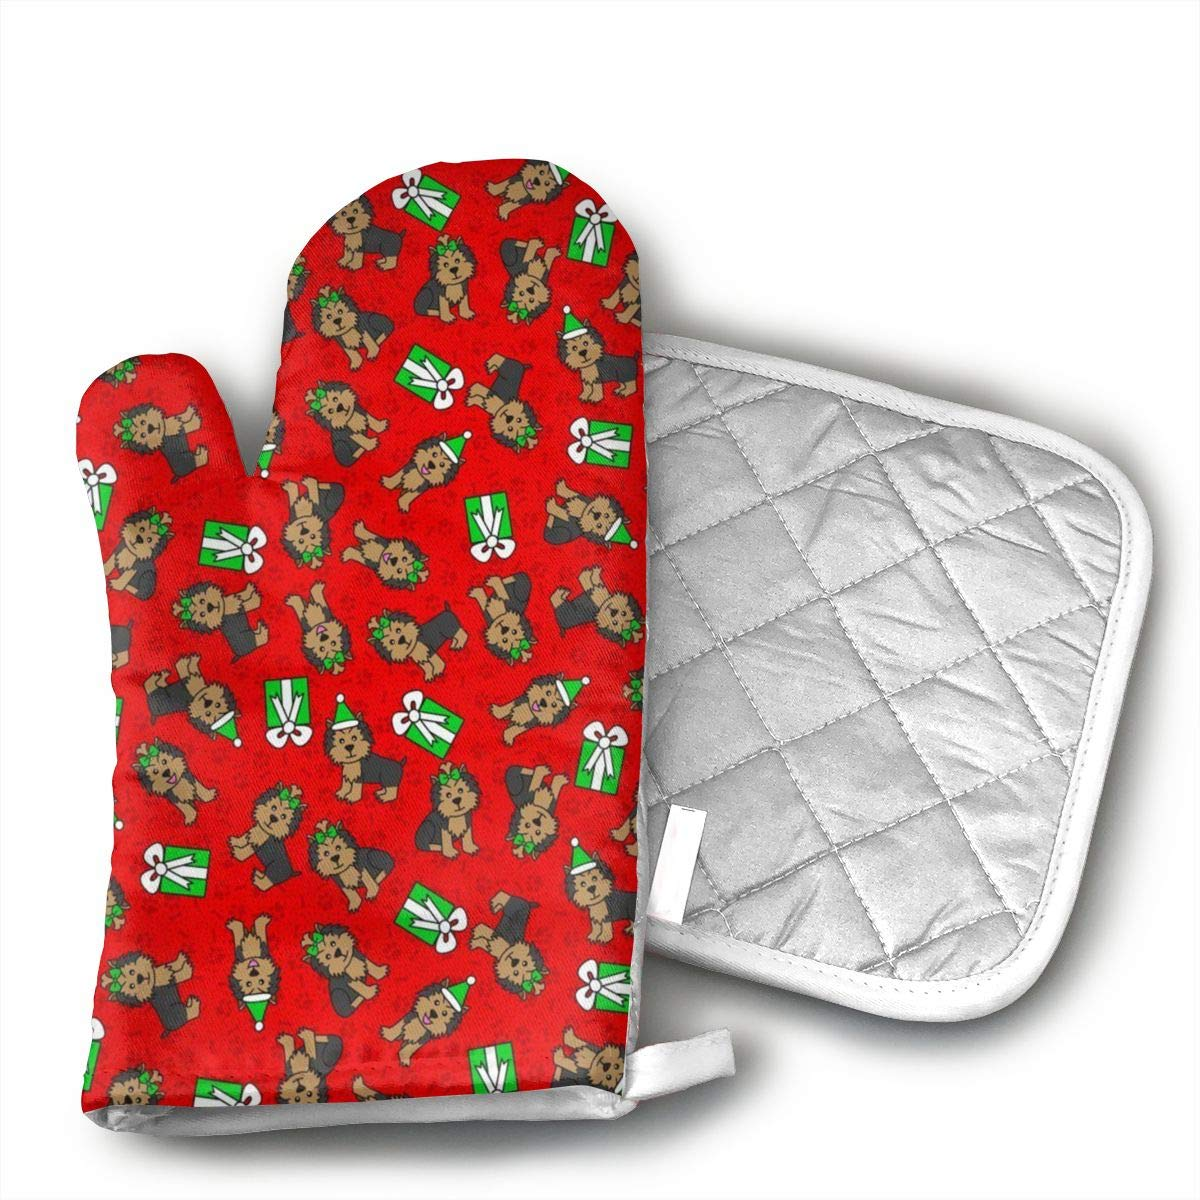 Sjiwqoj8 Merry Yorkies (Red Small) Kitchen Oven Mitts,Oven Mitts and Pot Holders,Heat Resistant with Quilted Cotton Lining,Cooking,Baking,Grilling,Barbecue